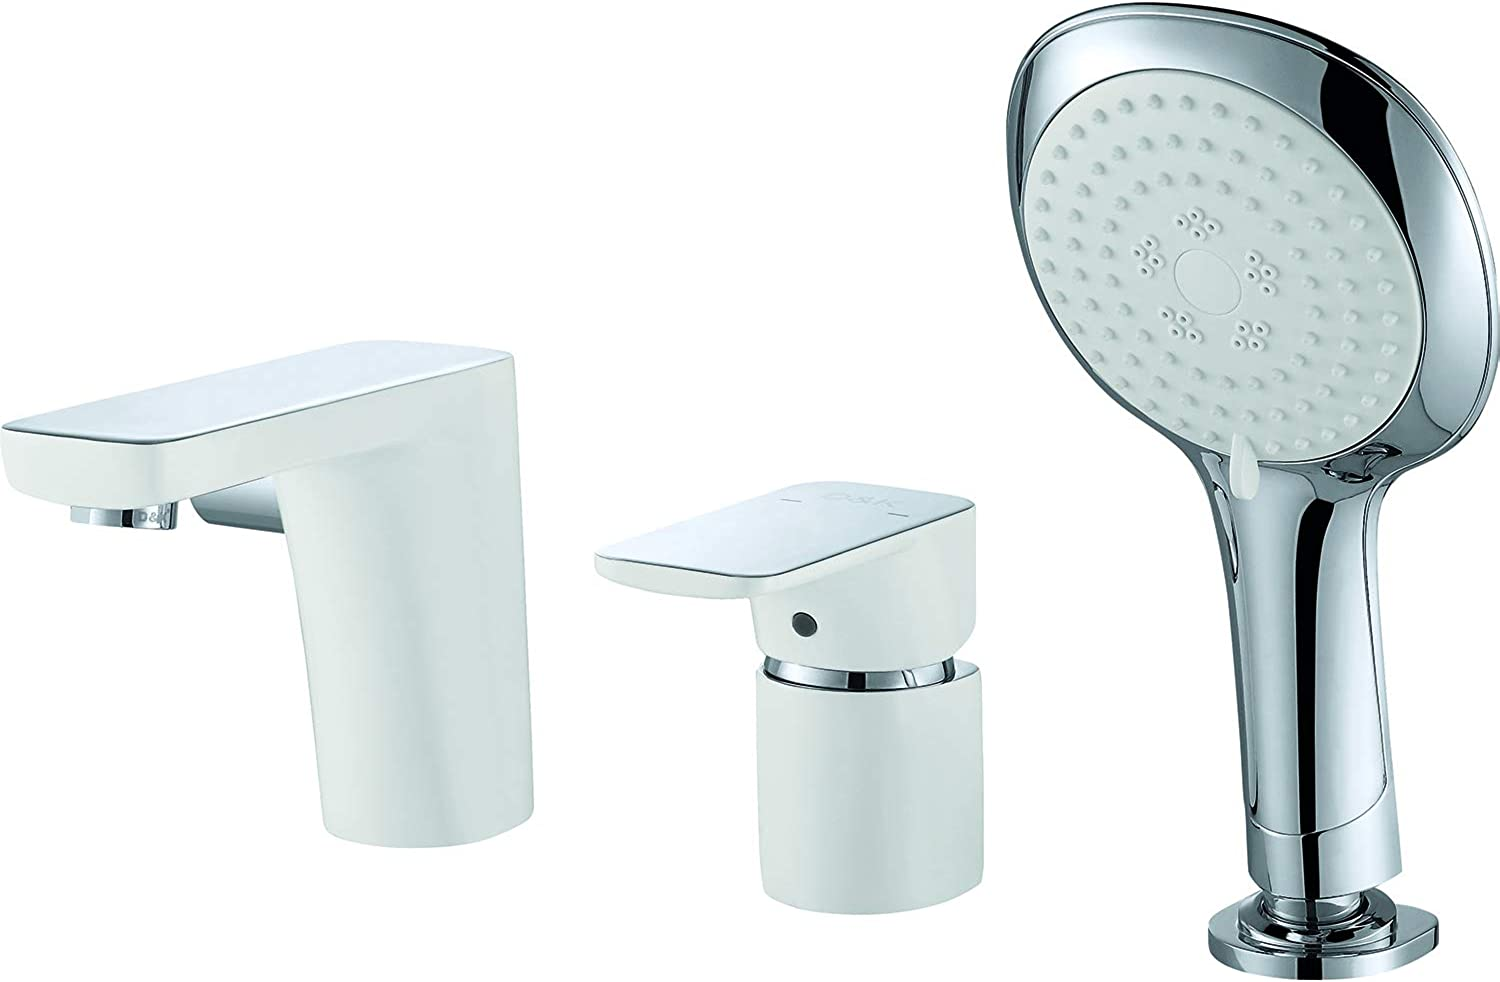 White Water Save Tub Mixer Tap One-Lever Brass with Pull-Out Handheld Shower - Nickel Chrome Finish DA1434916